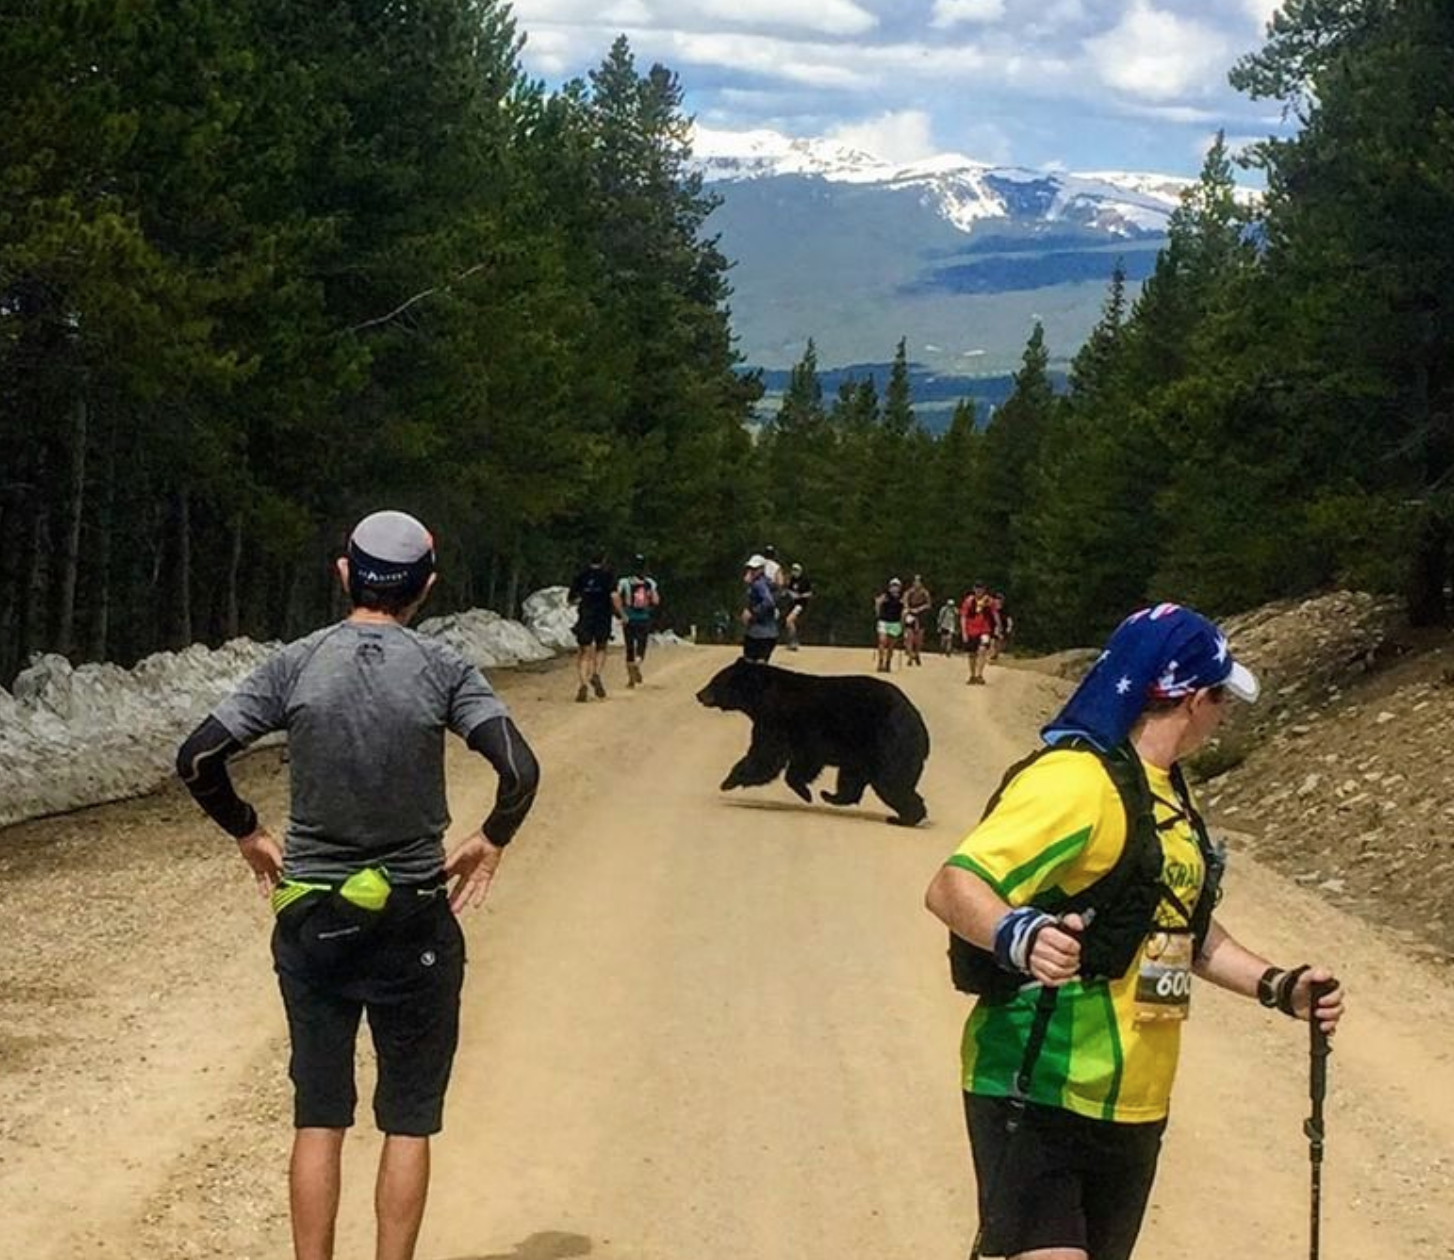 A bear jumped out between runners, during Leadville trail marathon